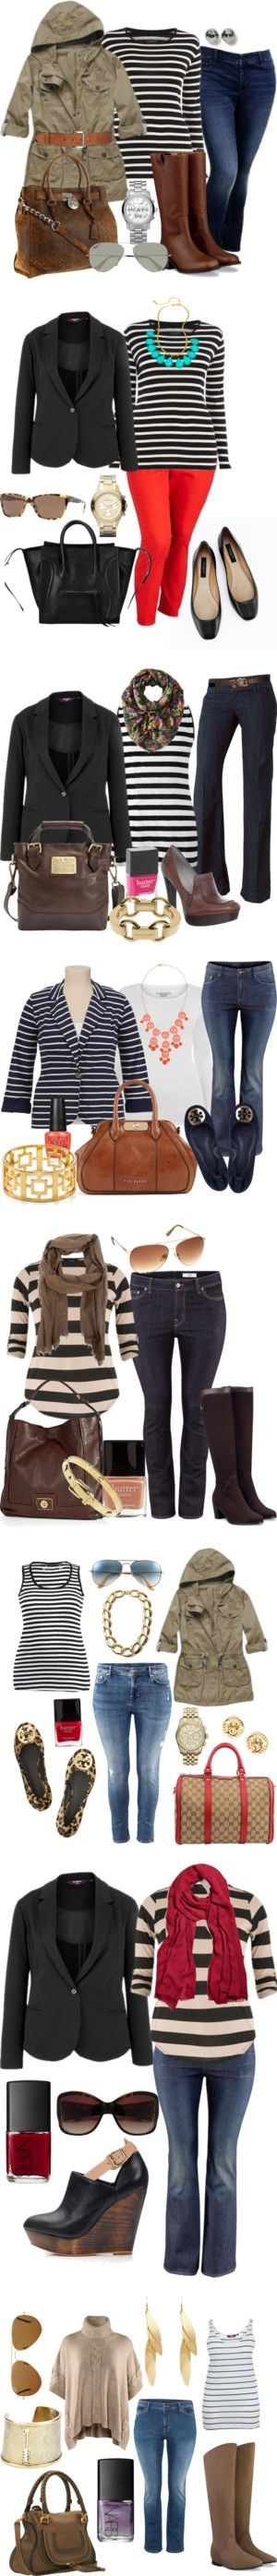 """How to do stripes - Plus Size"" by alexawebb on Polyvore"